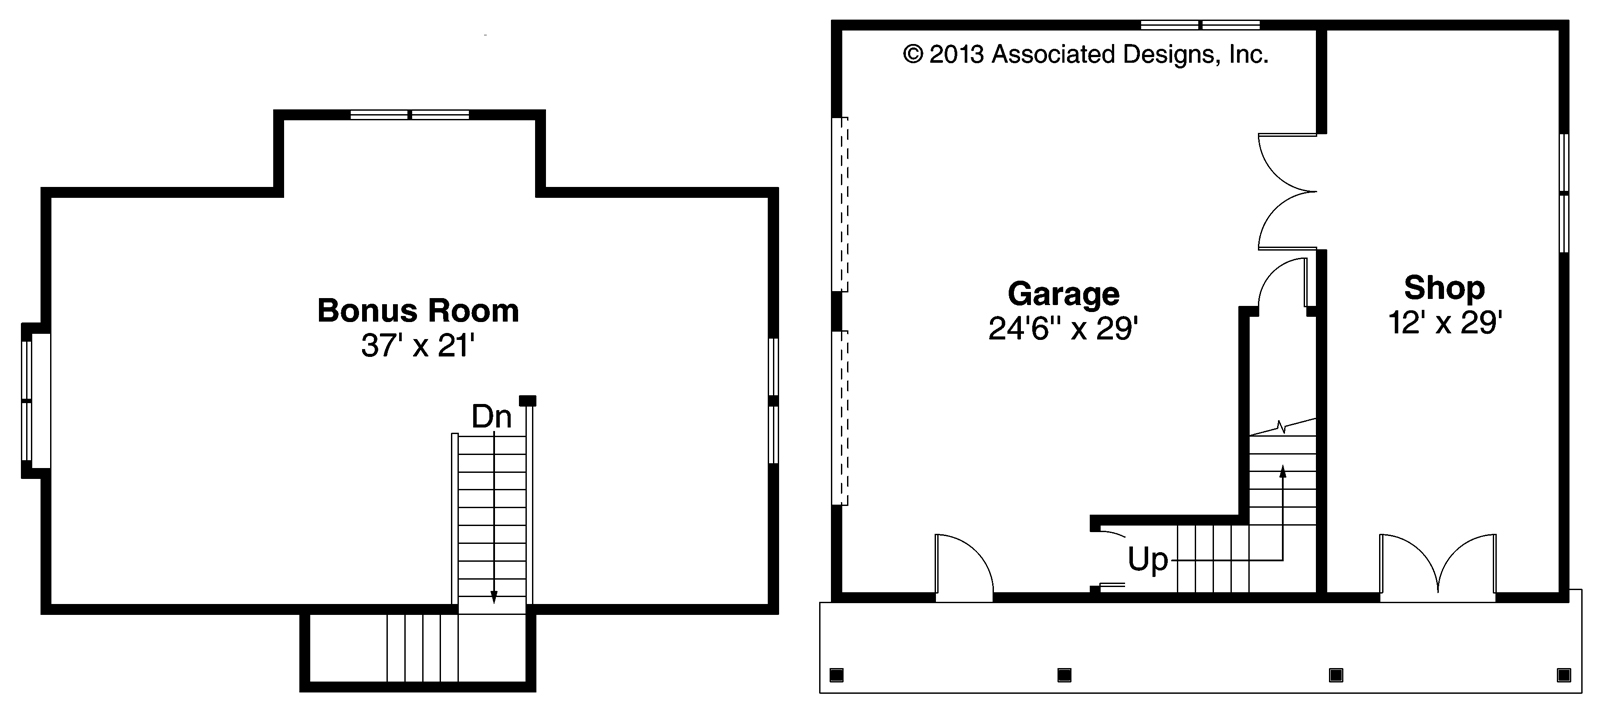 Garage plans with bonus room famin for Garage floor plans